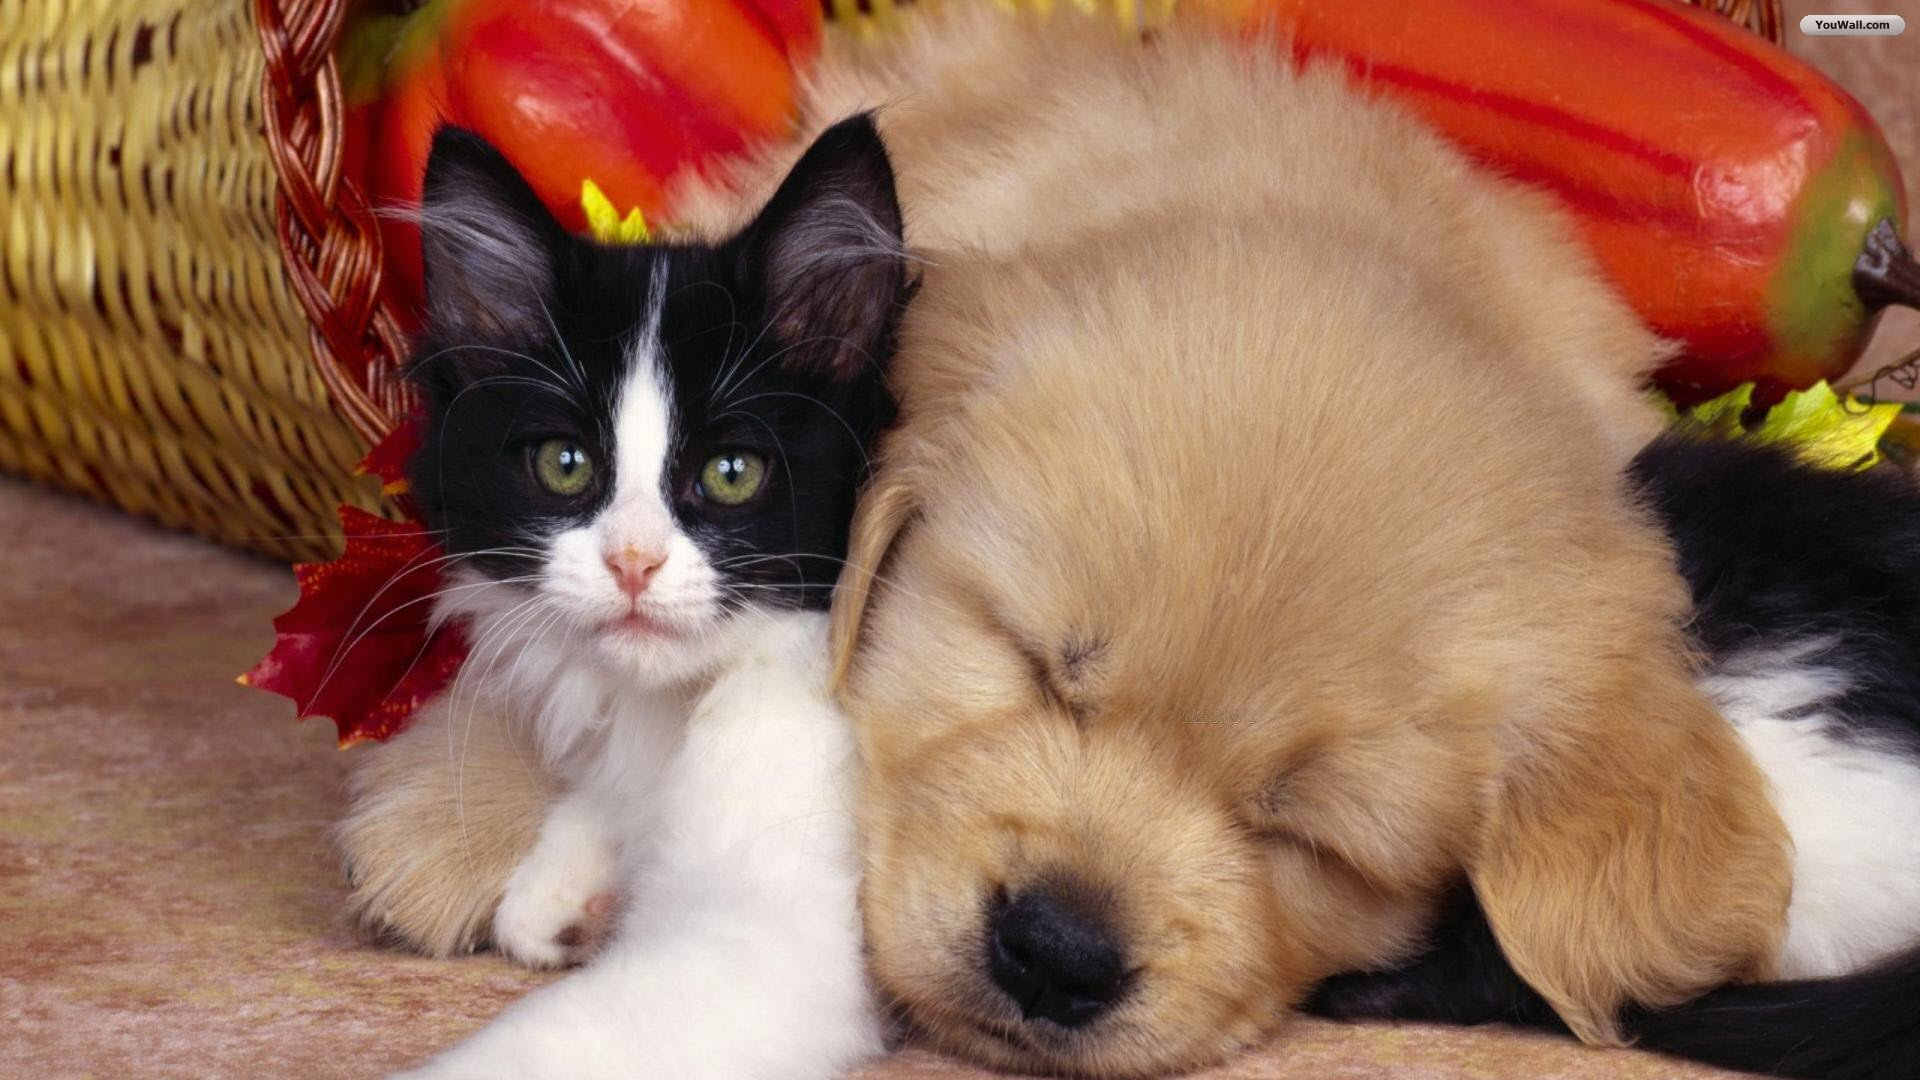 Free Cute Dog and Cat Wallpaper HD